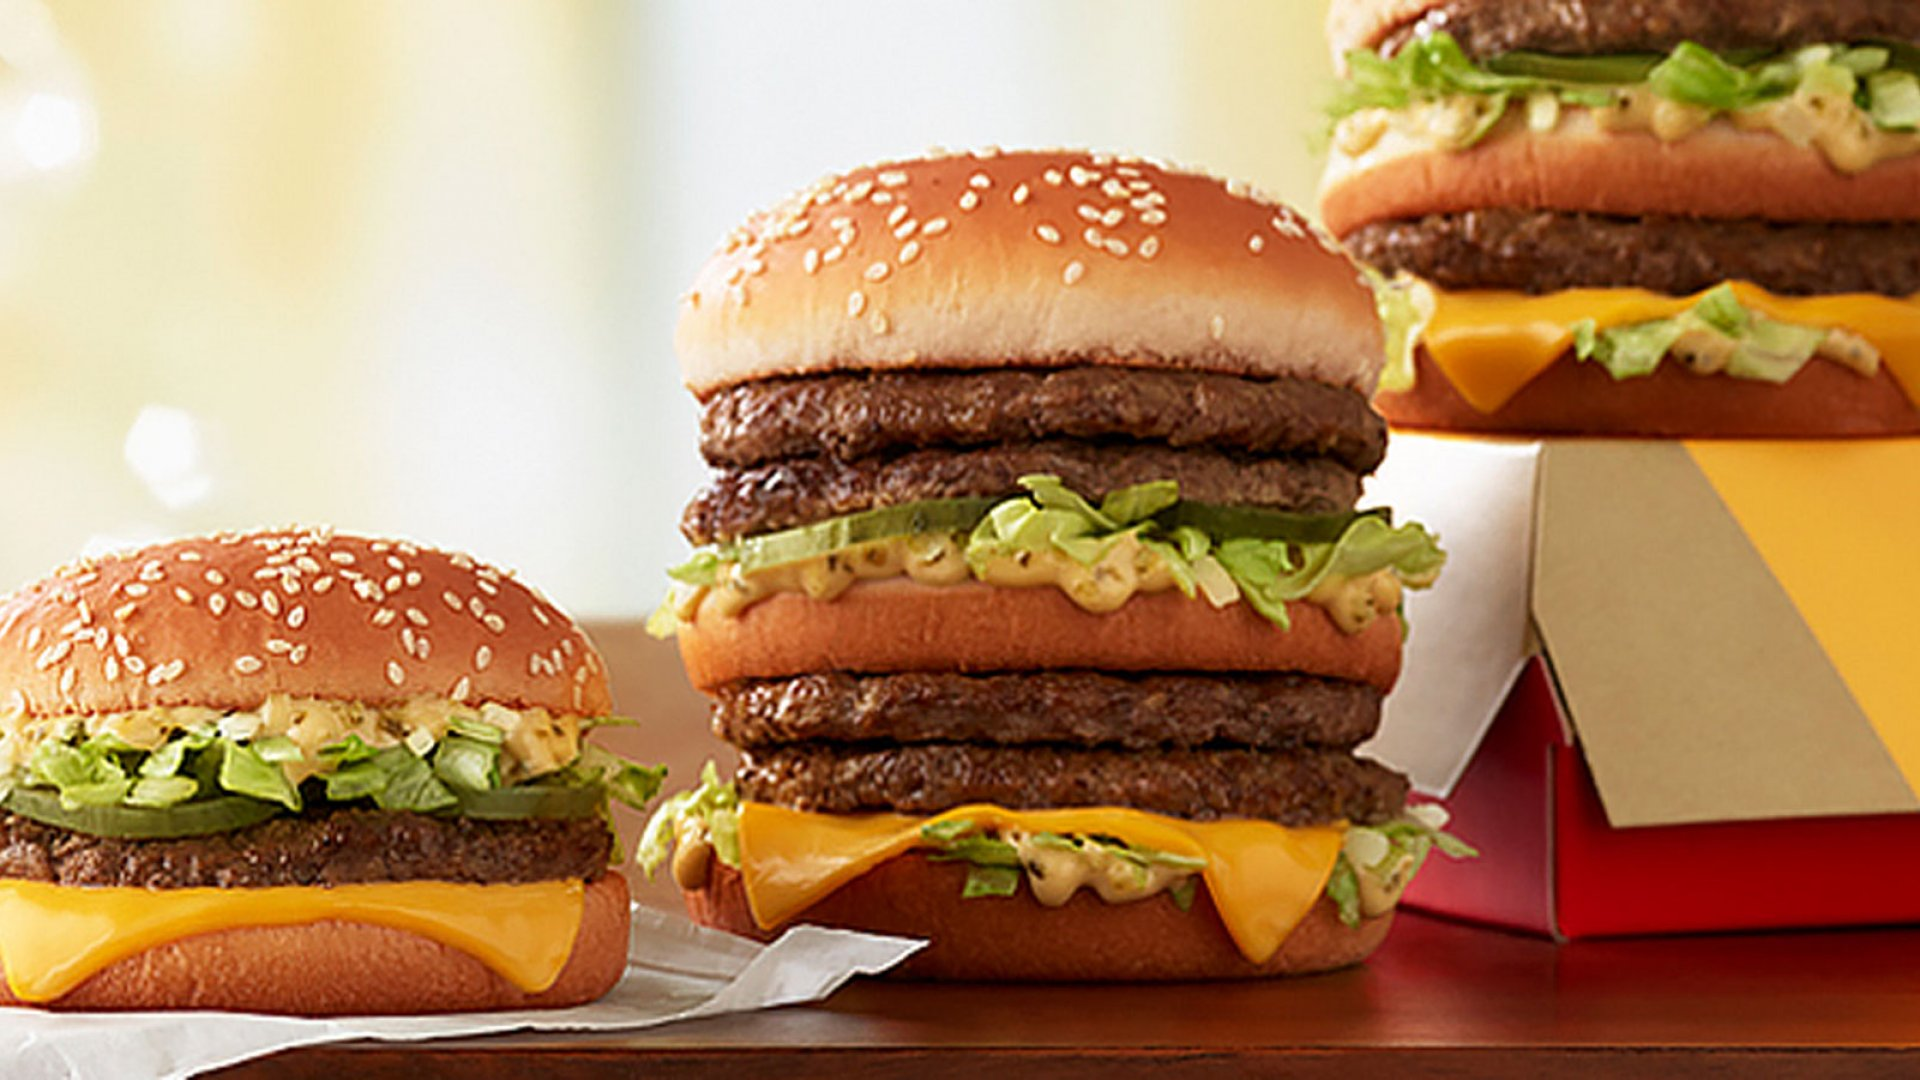 Here's Why the Double Big Mac and Little Mac Might Be the Smartest New Things on the Menu at McDonald's